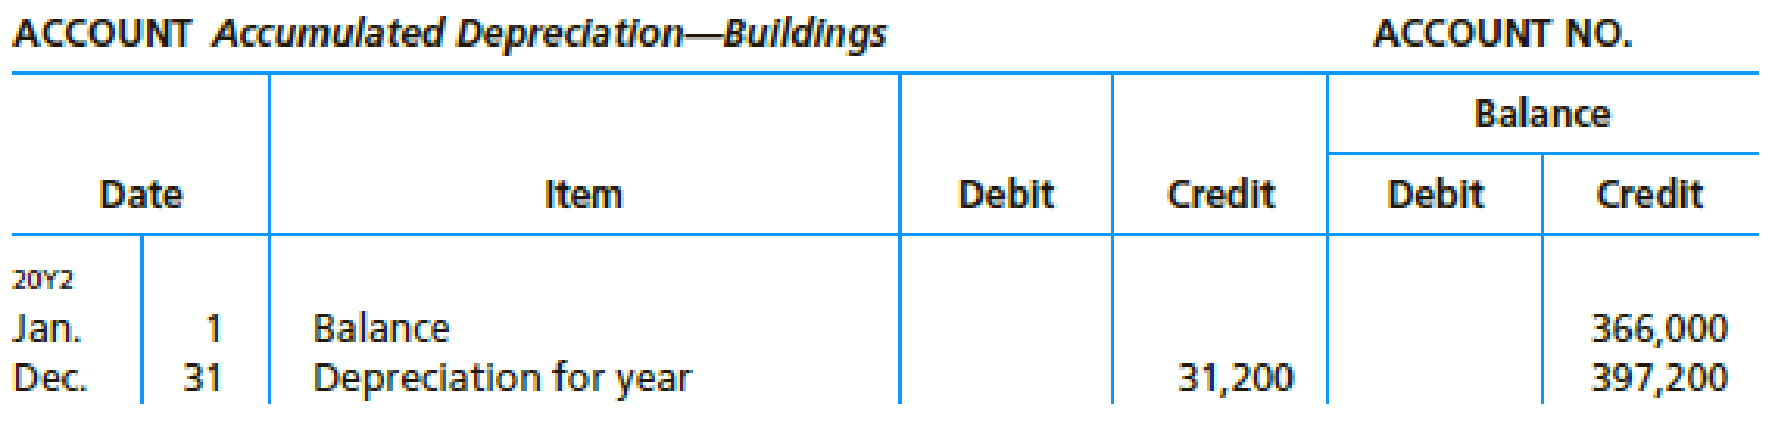 Chapter 16, Problem 3PB, The comparative balance sheet of Coulson, Inc. at December 31, 20Y2 and 20Y1, is as follows: The , example  5